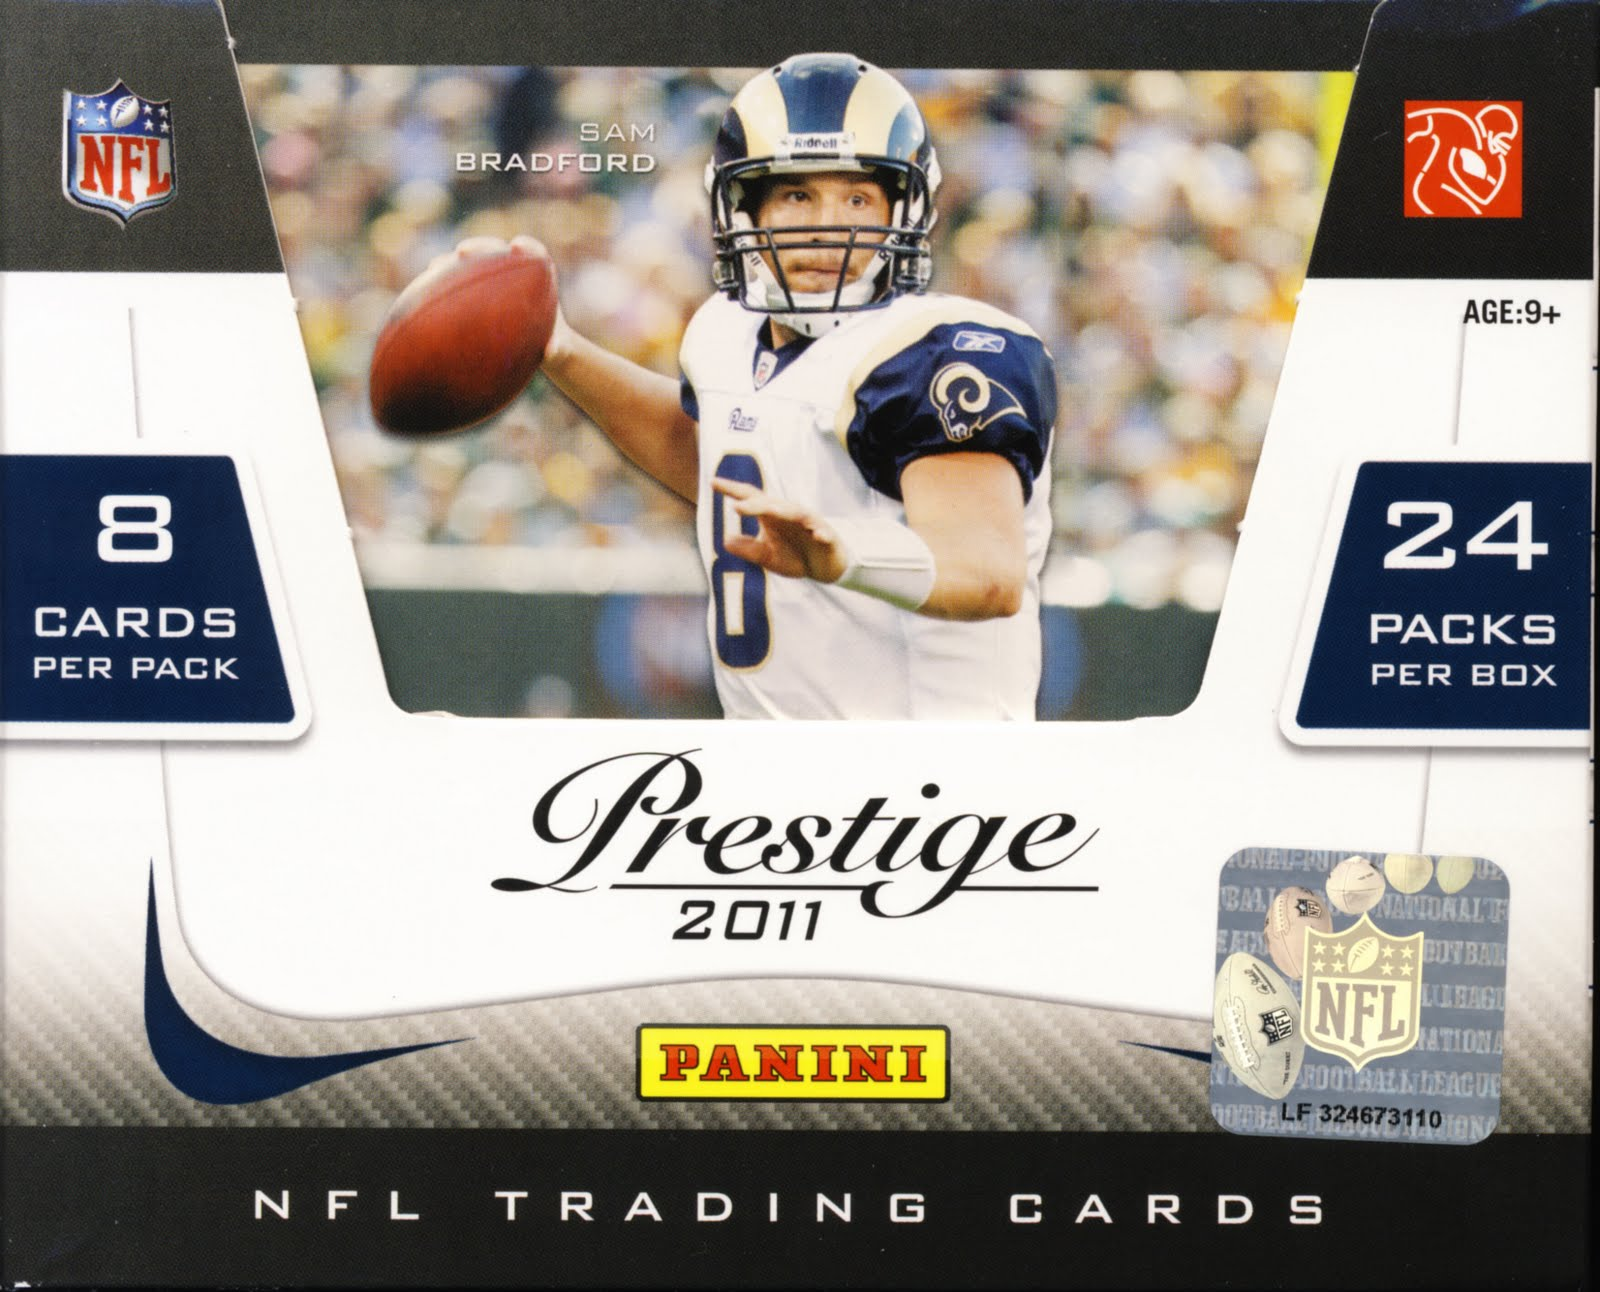 All About Cards: 2011 Panini Prestige Football NFL Trading Cards. An All About Cards Review